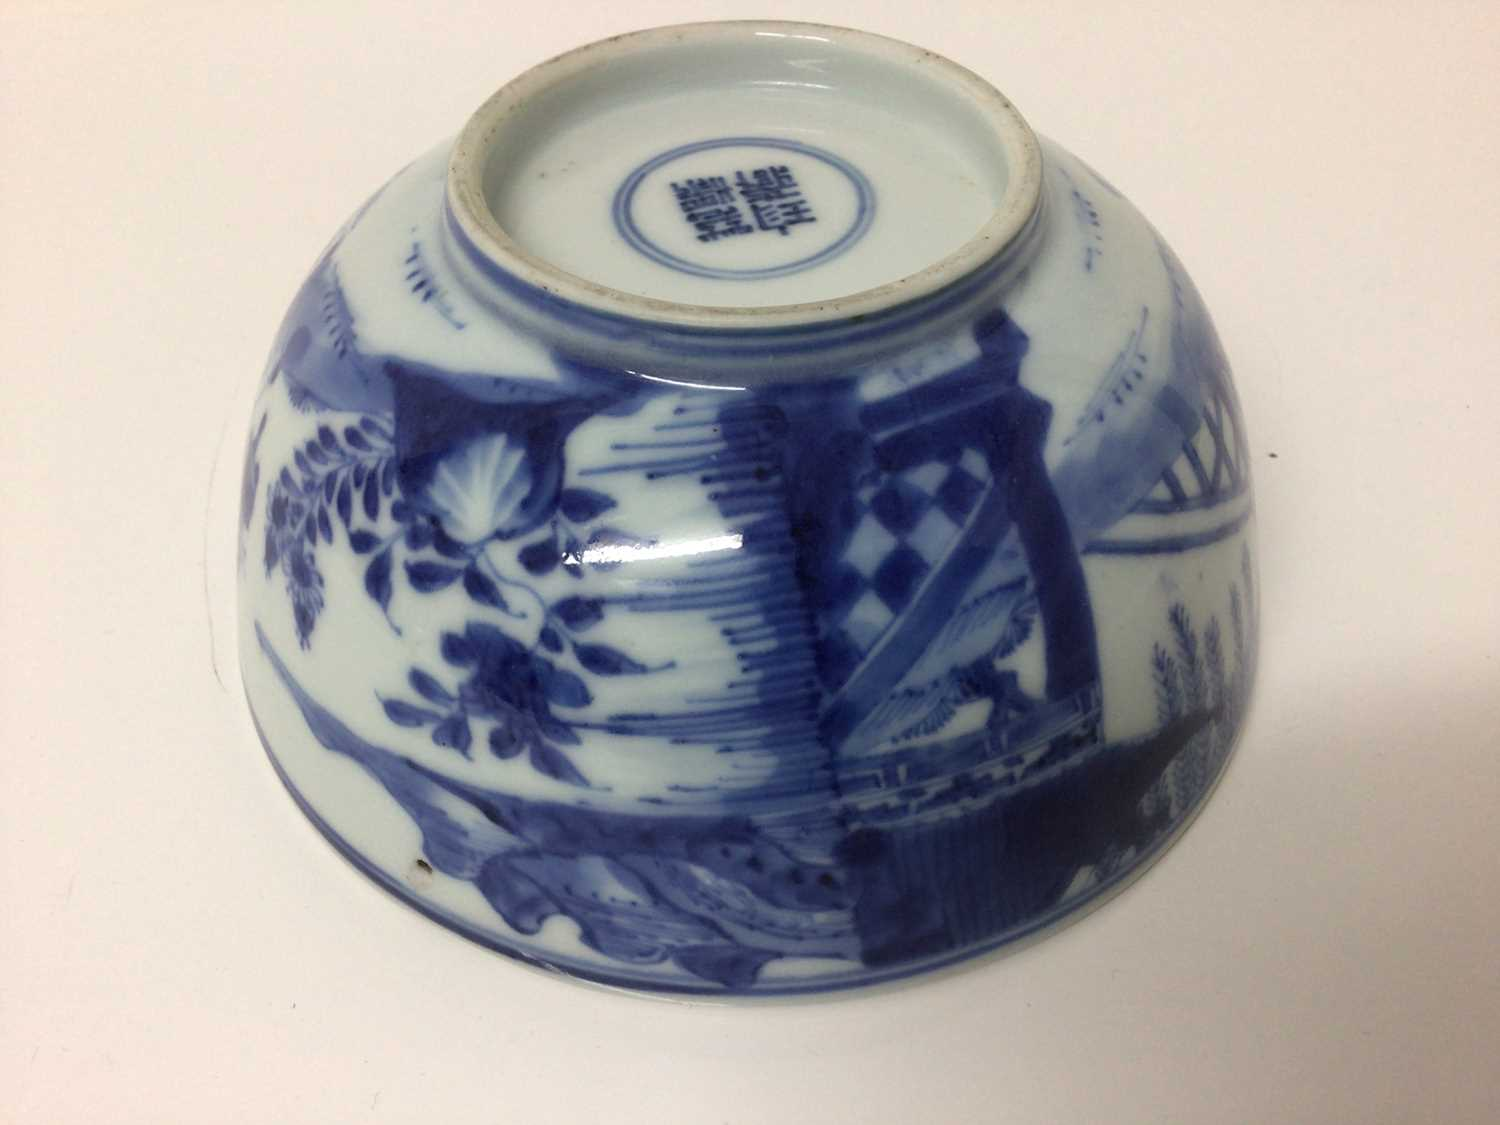 Chinese Kangxi porcelain jug and cover with later silver mount, together with a bowl (2) - Image 5 of 16